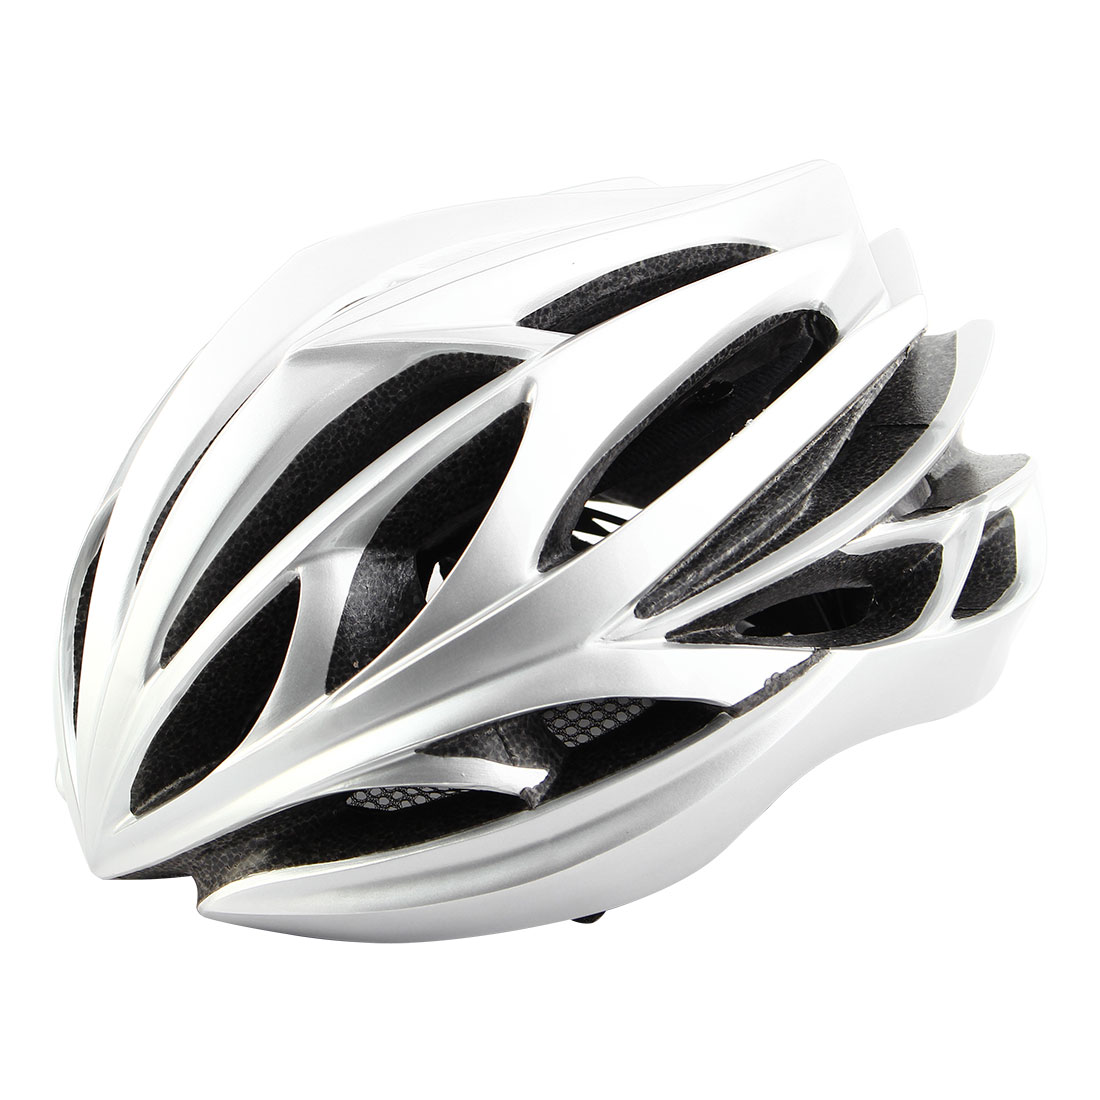 Patent Authorized Adult Unisex 22 Holes Cycling Cap Bicycle Hat Safety Protector Adjustable Bike Helmet Silver Tone